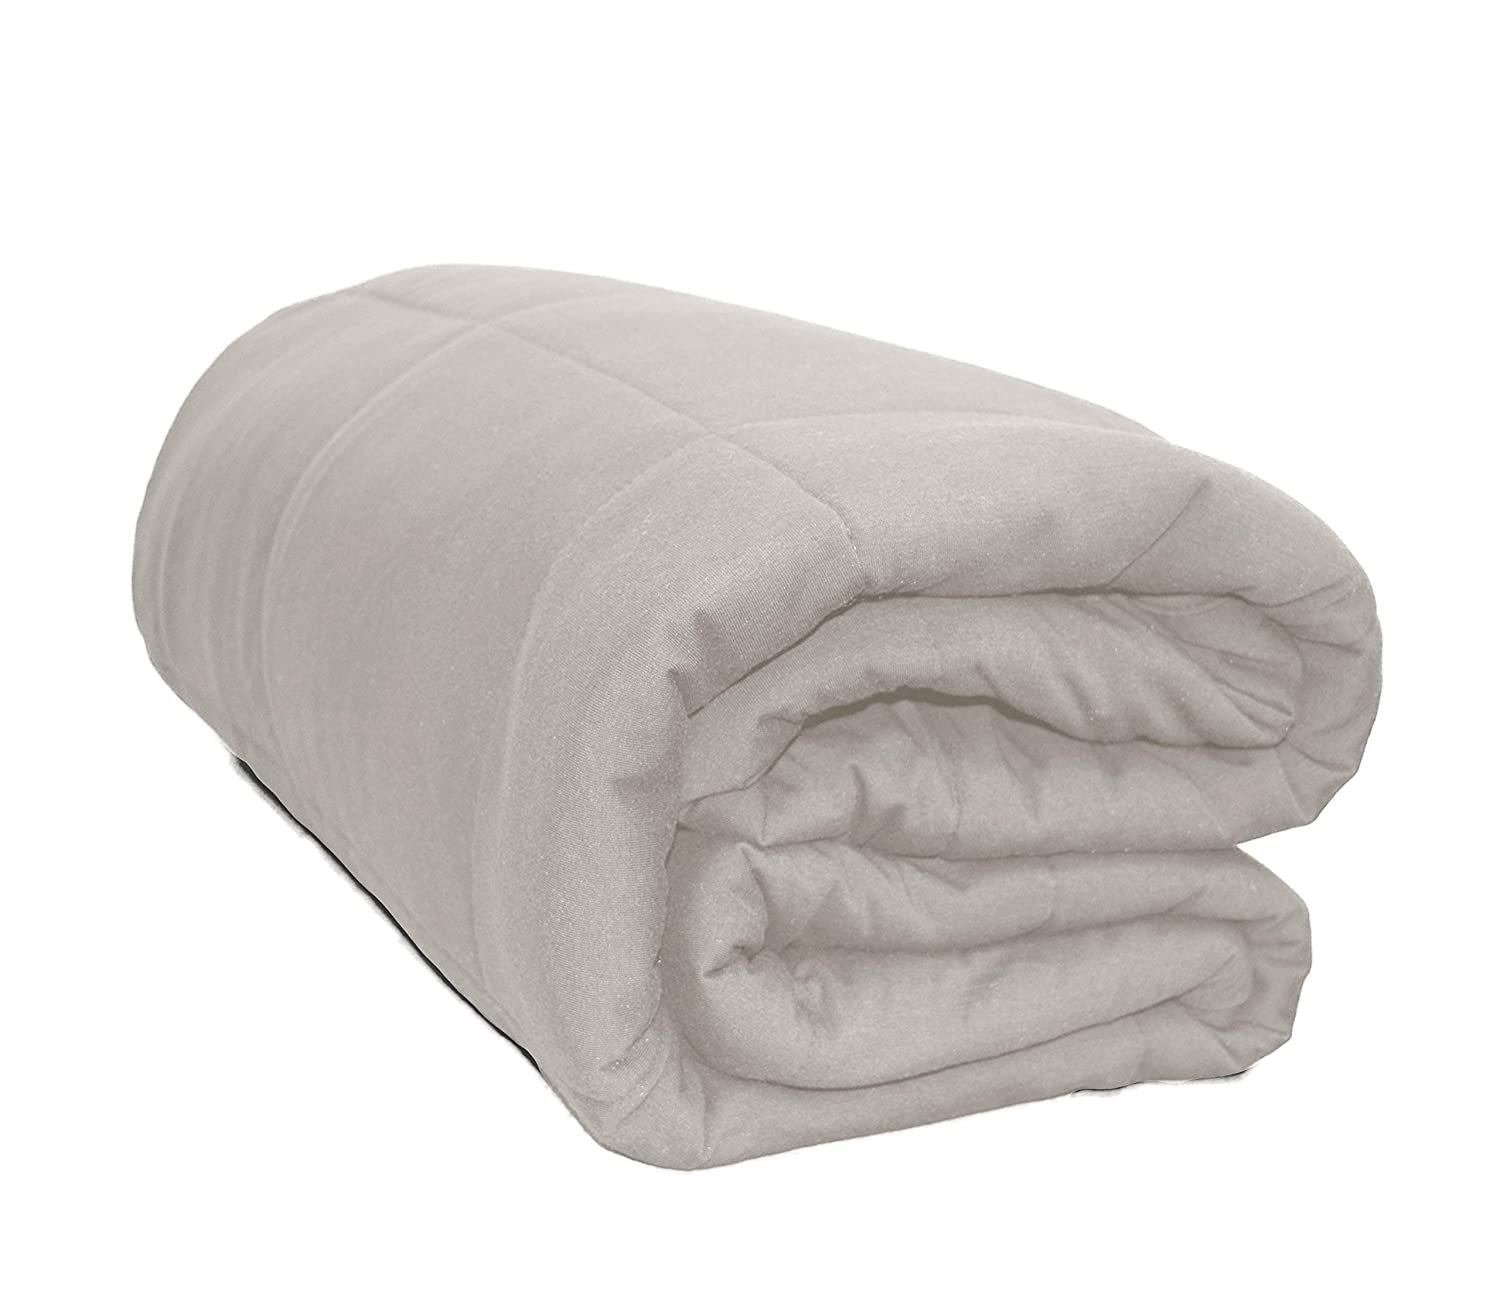 Super Comfy and Stretchy Yogibo CozyBo Luxury Bean Bag Blanket Green Warm Winter Blanket Soft Cotton Spandex Blend meant to Keep Heat